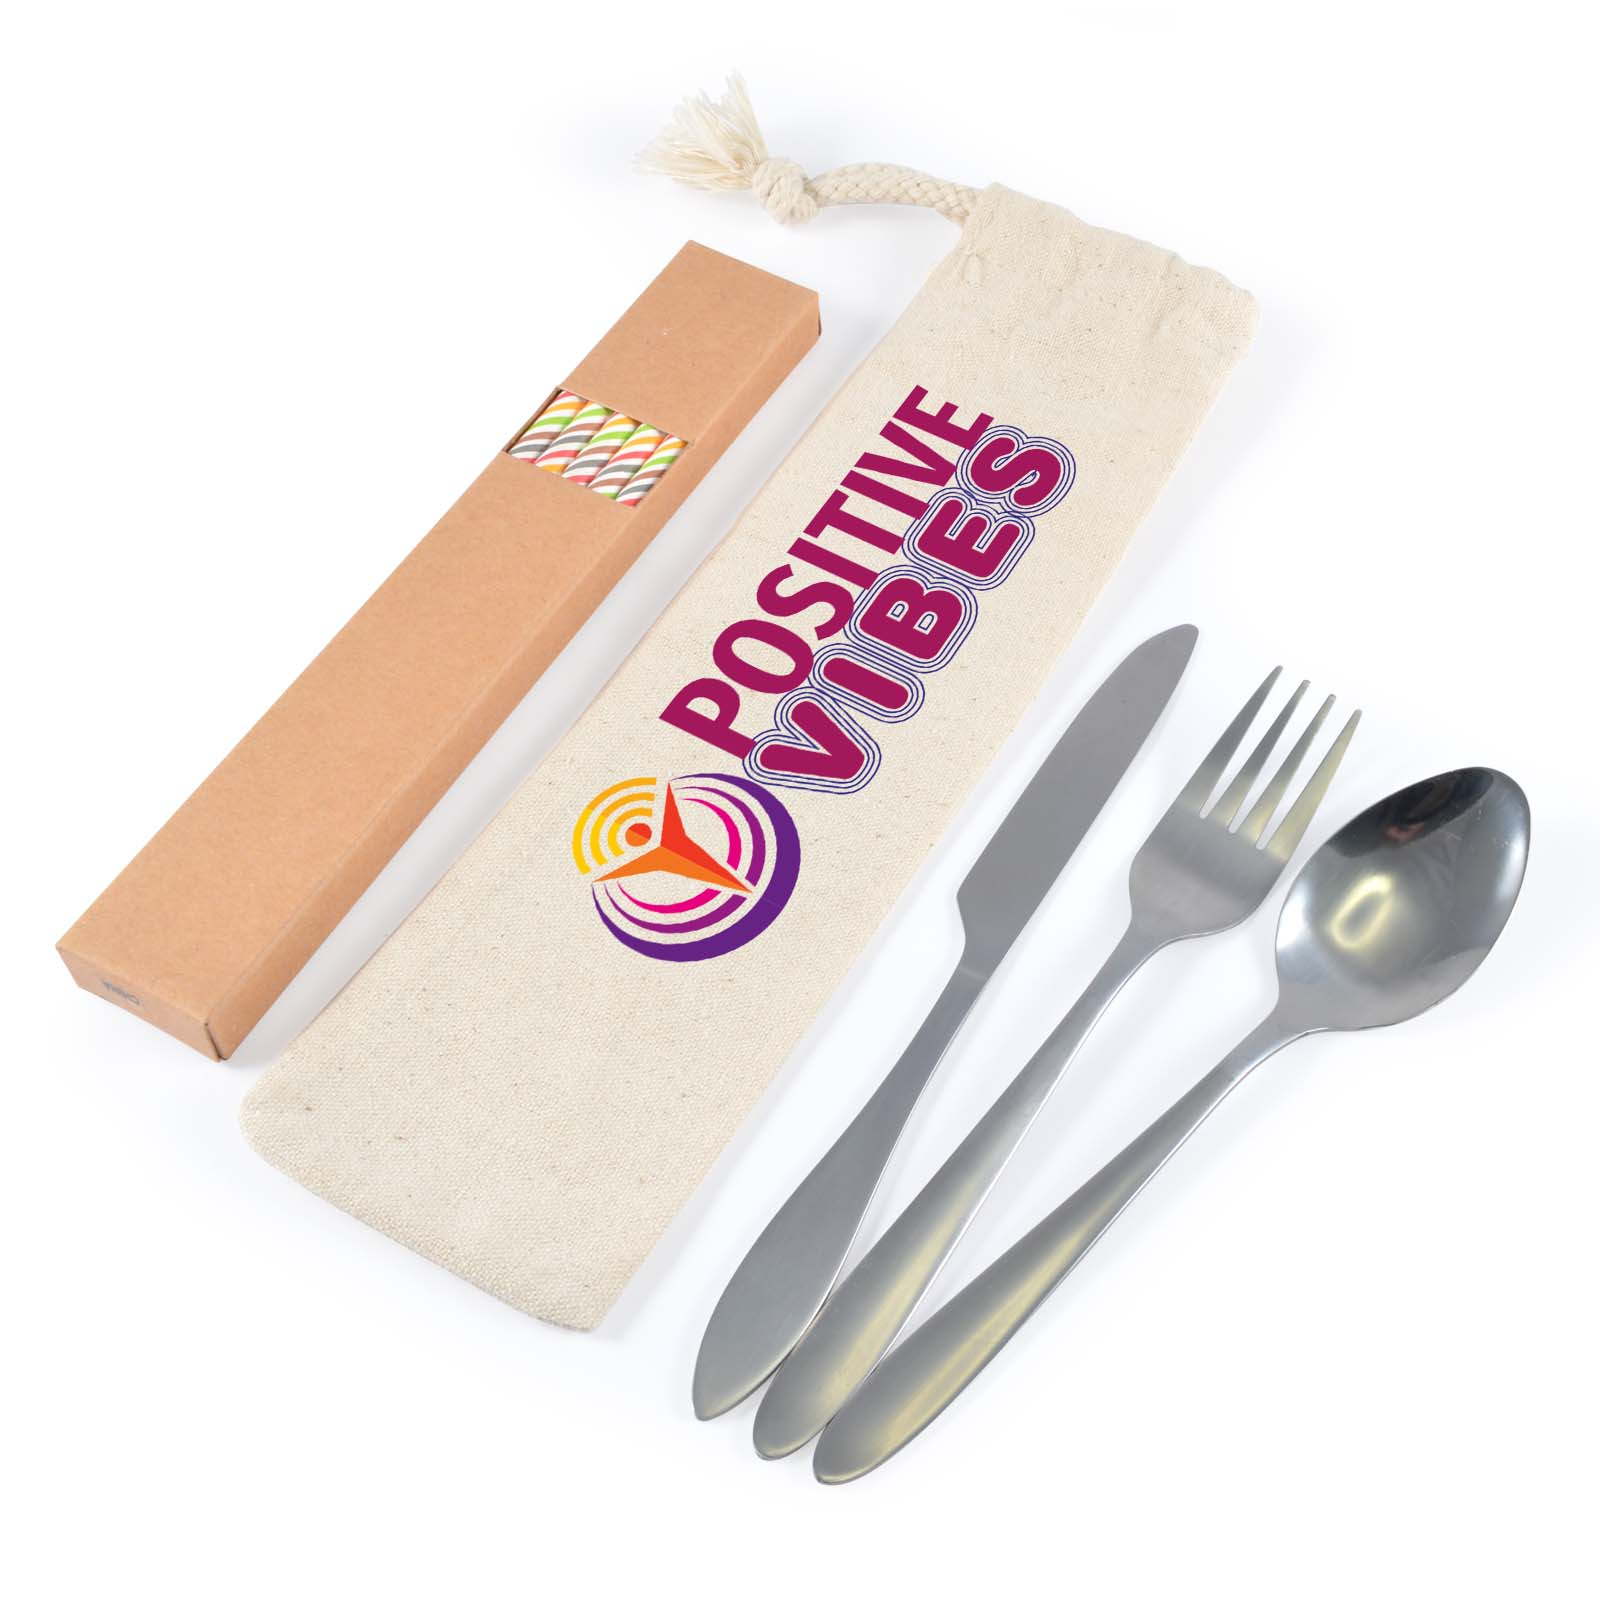 Cutlery Sets and Straws